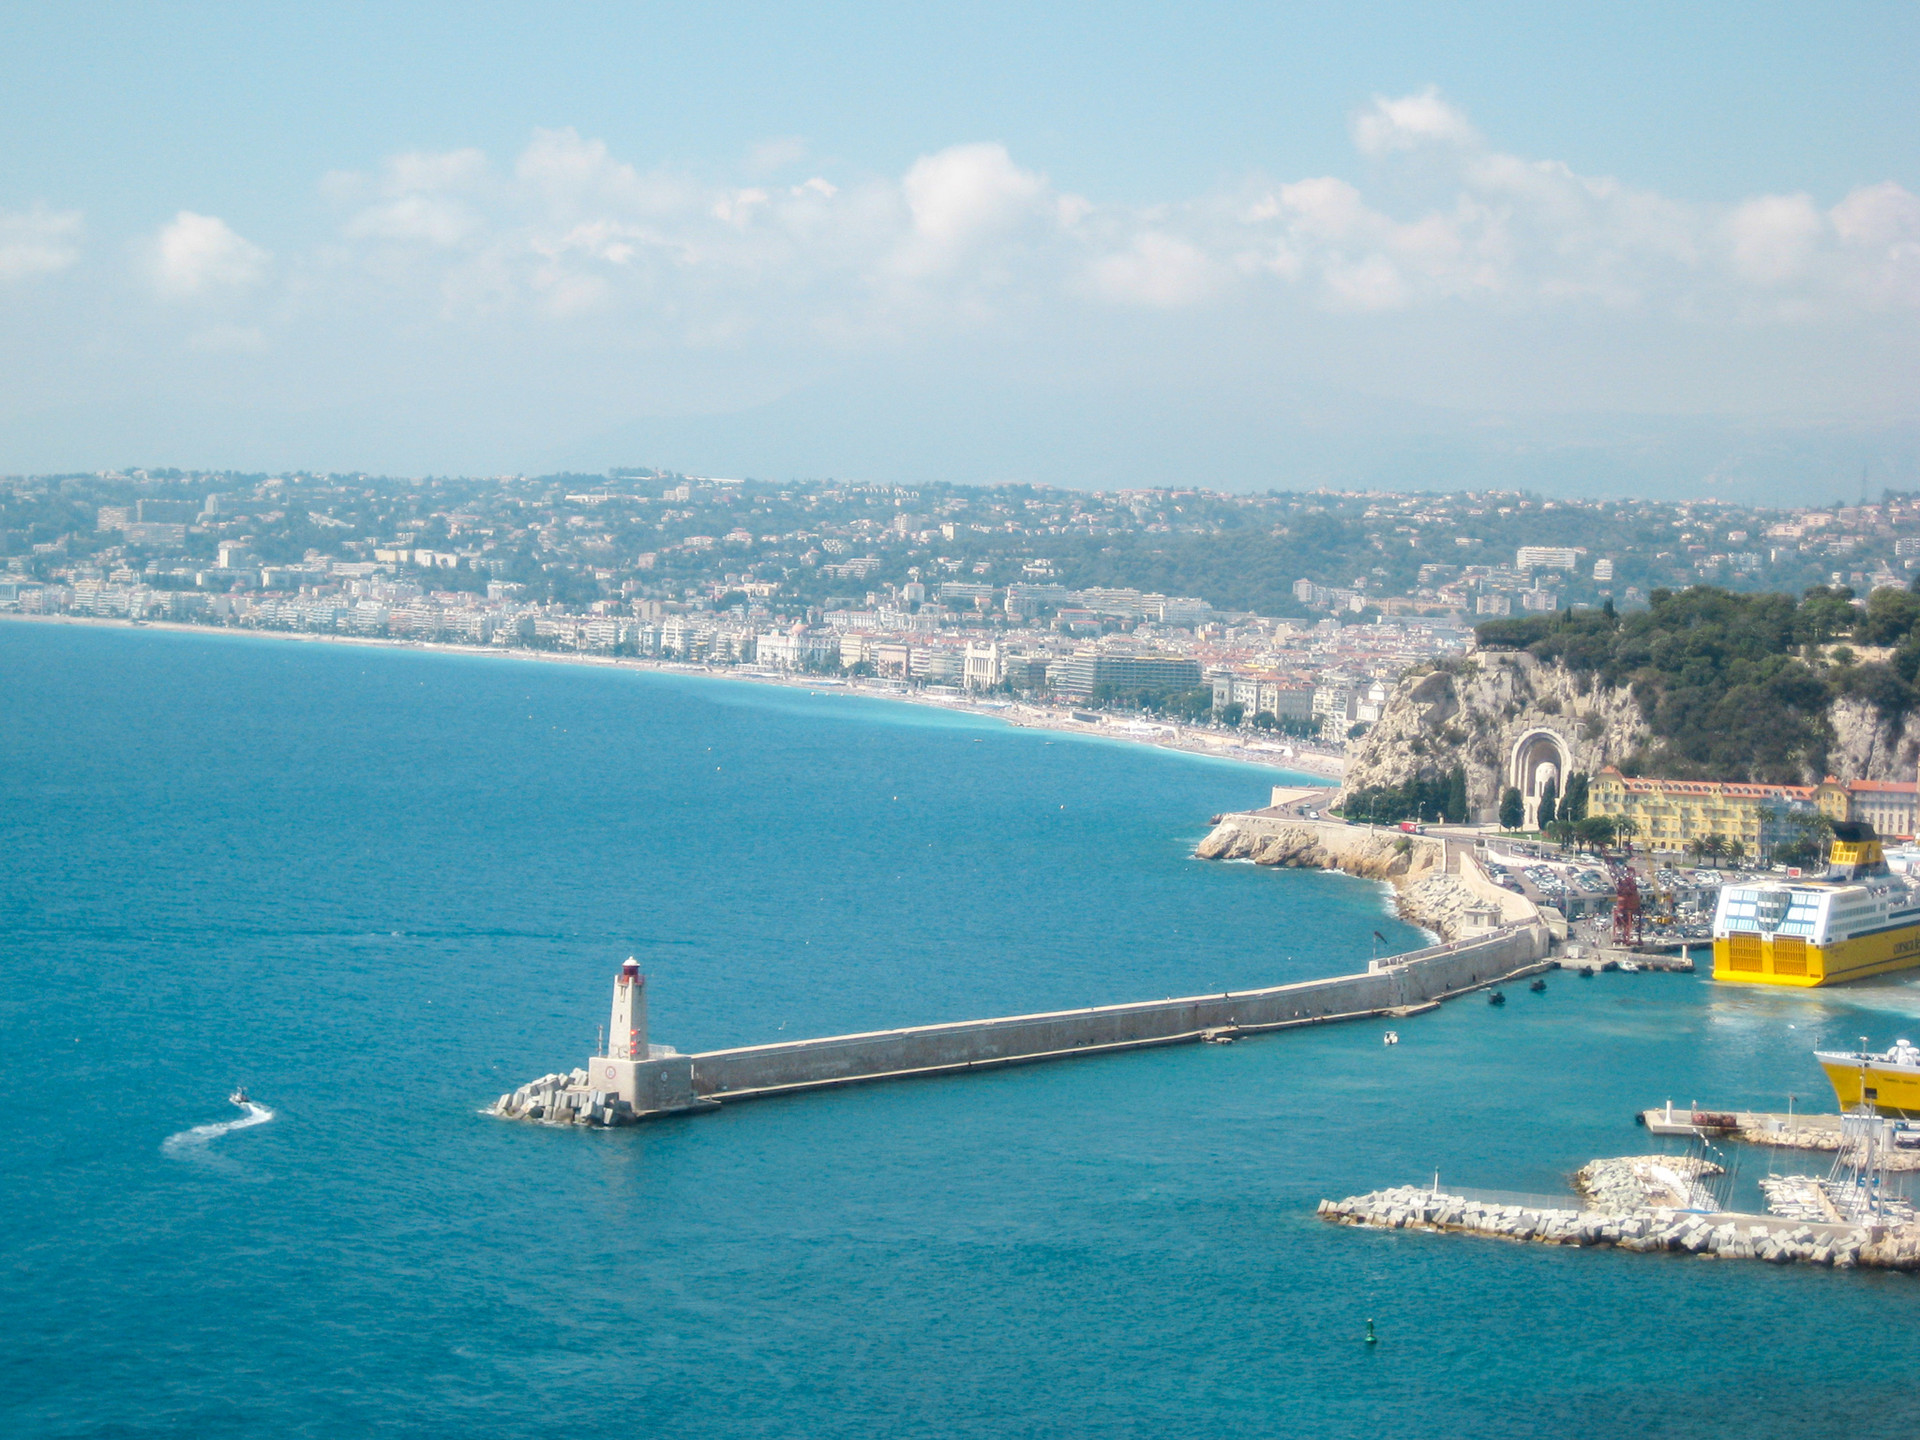 View of Phare de Nice Lighthouse